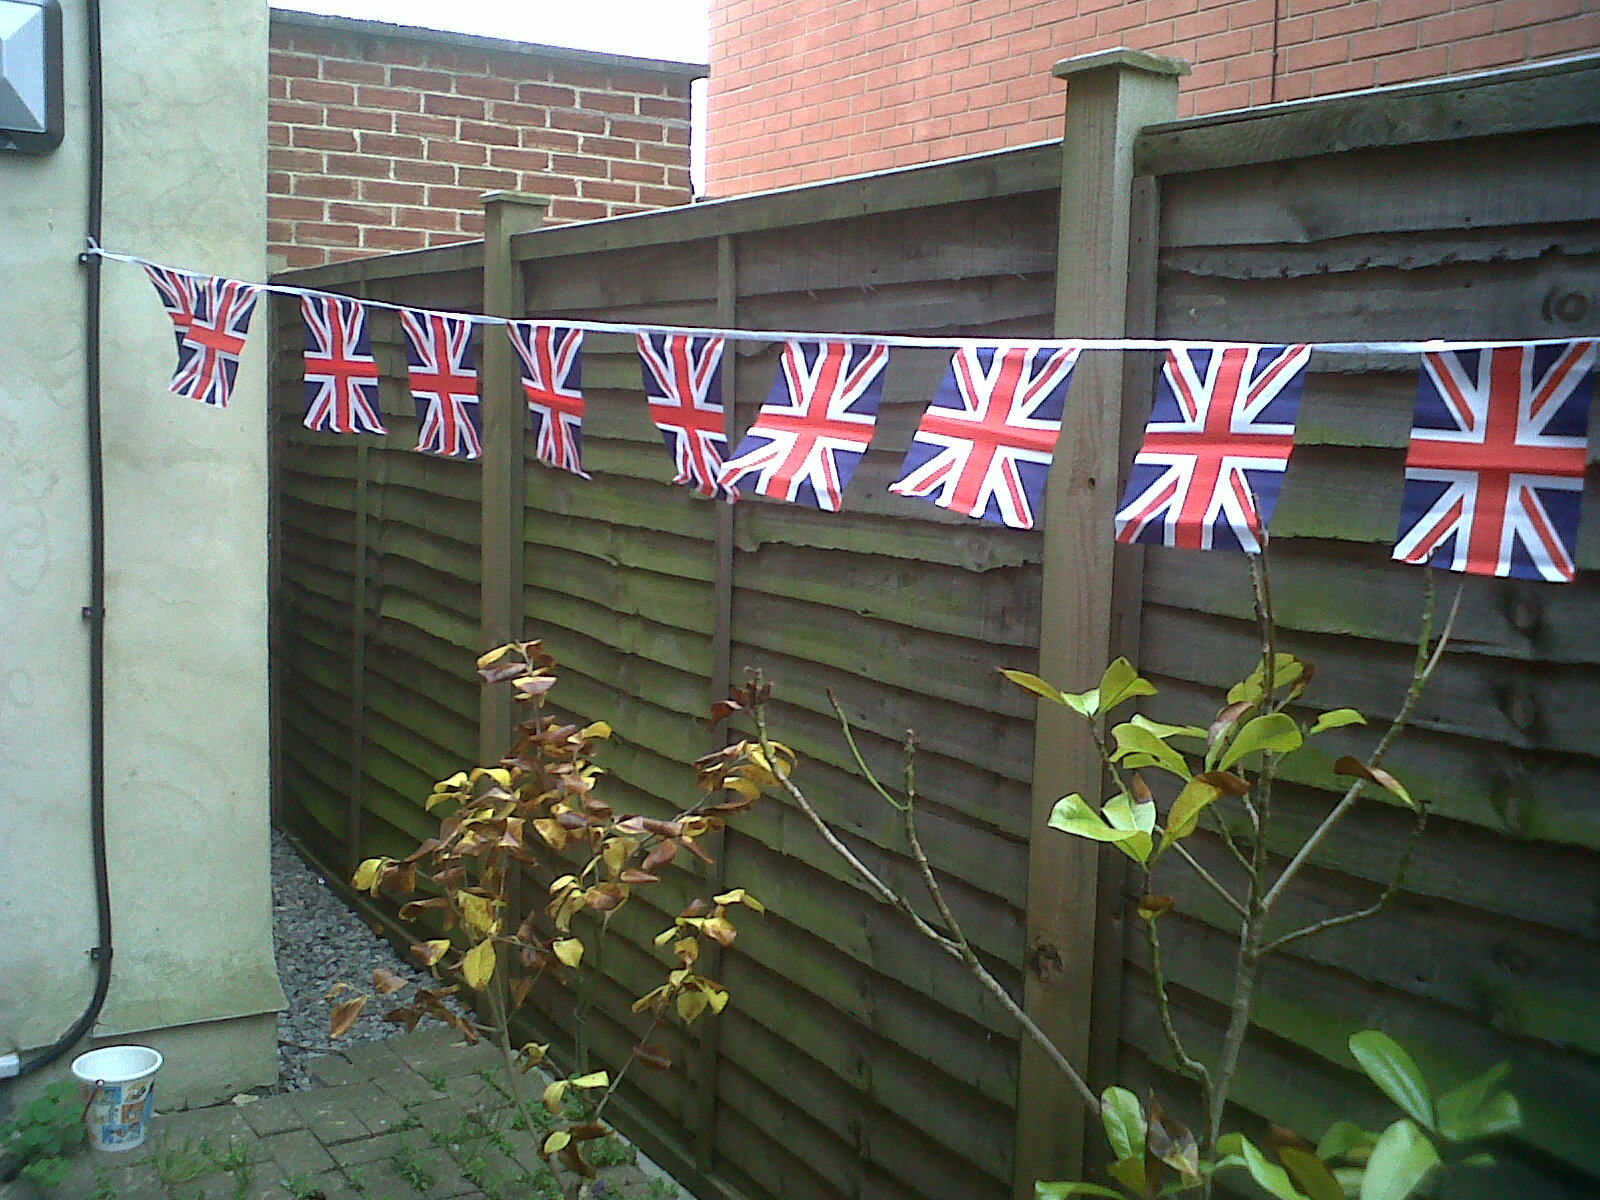 Oooh yeah, can't beat a bit of bunting!